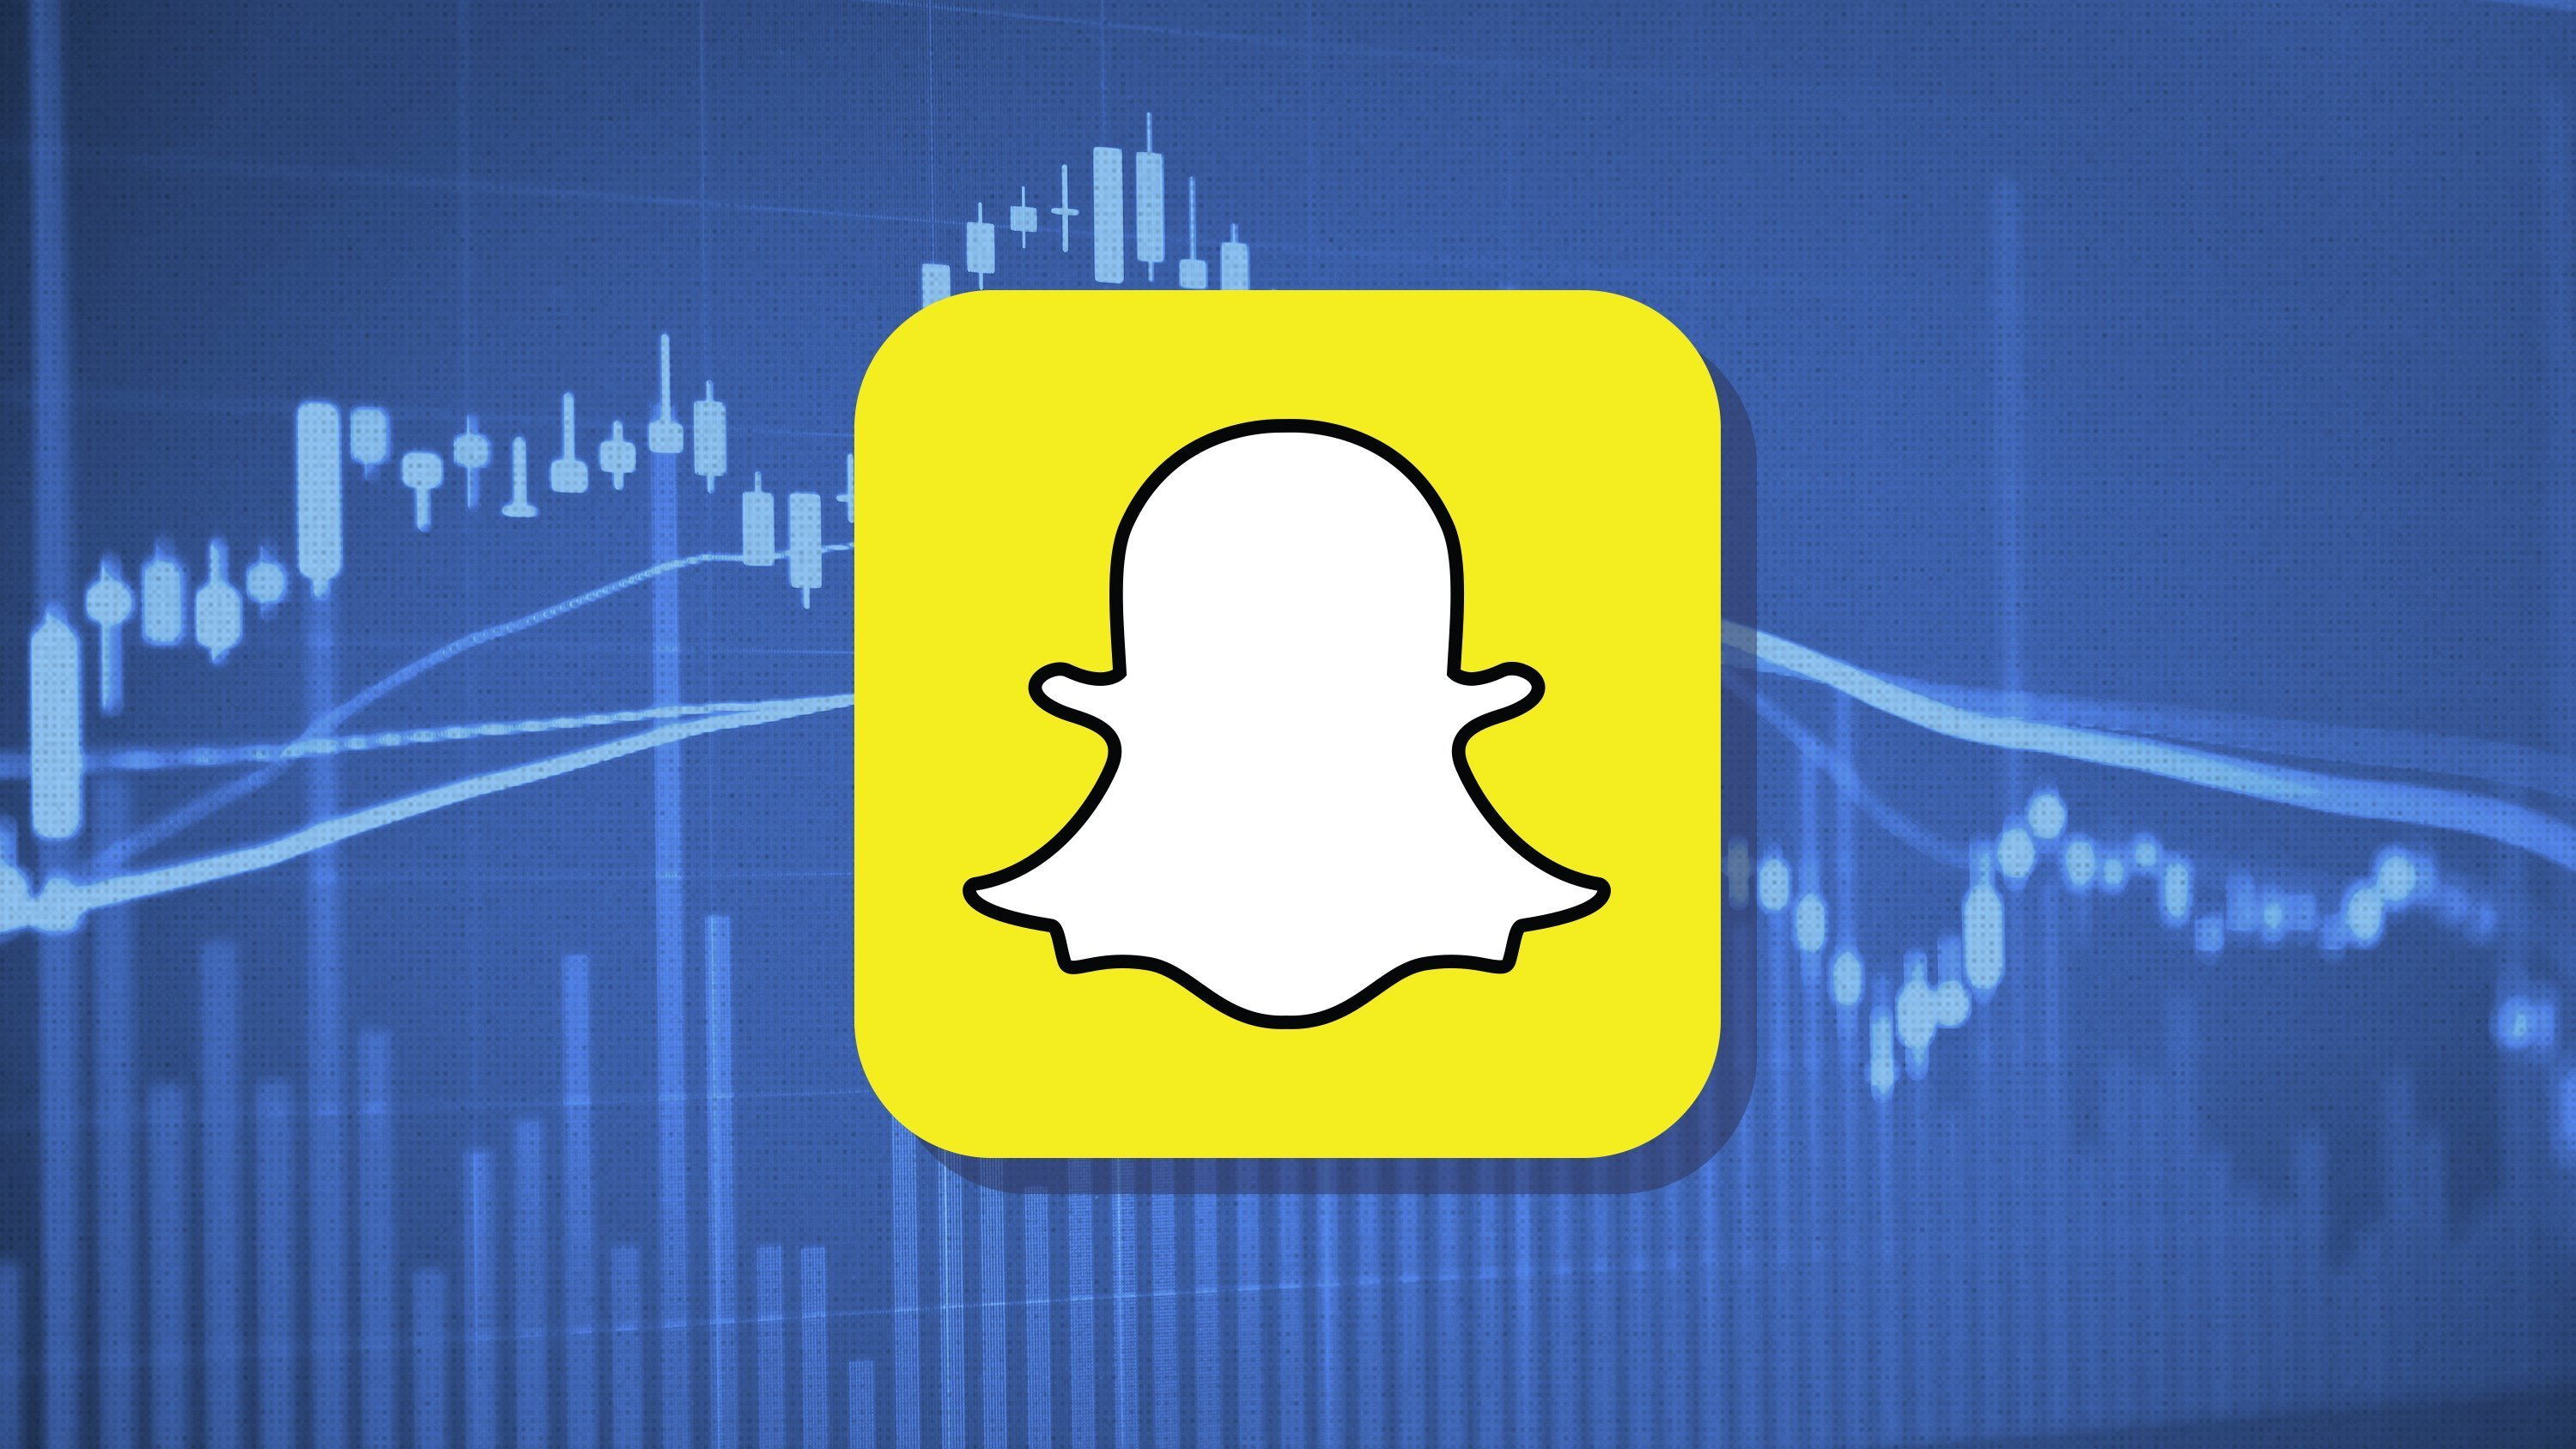 Snap (SNAP) Receives Upgrade From Barclays. Will Other Analysts Follow Suit?